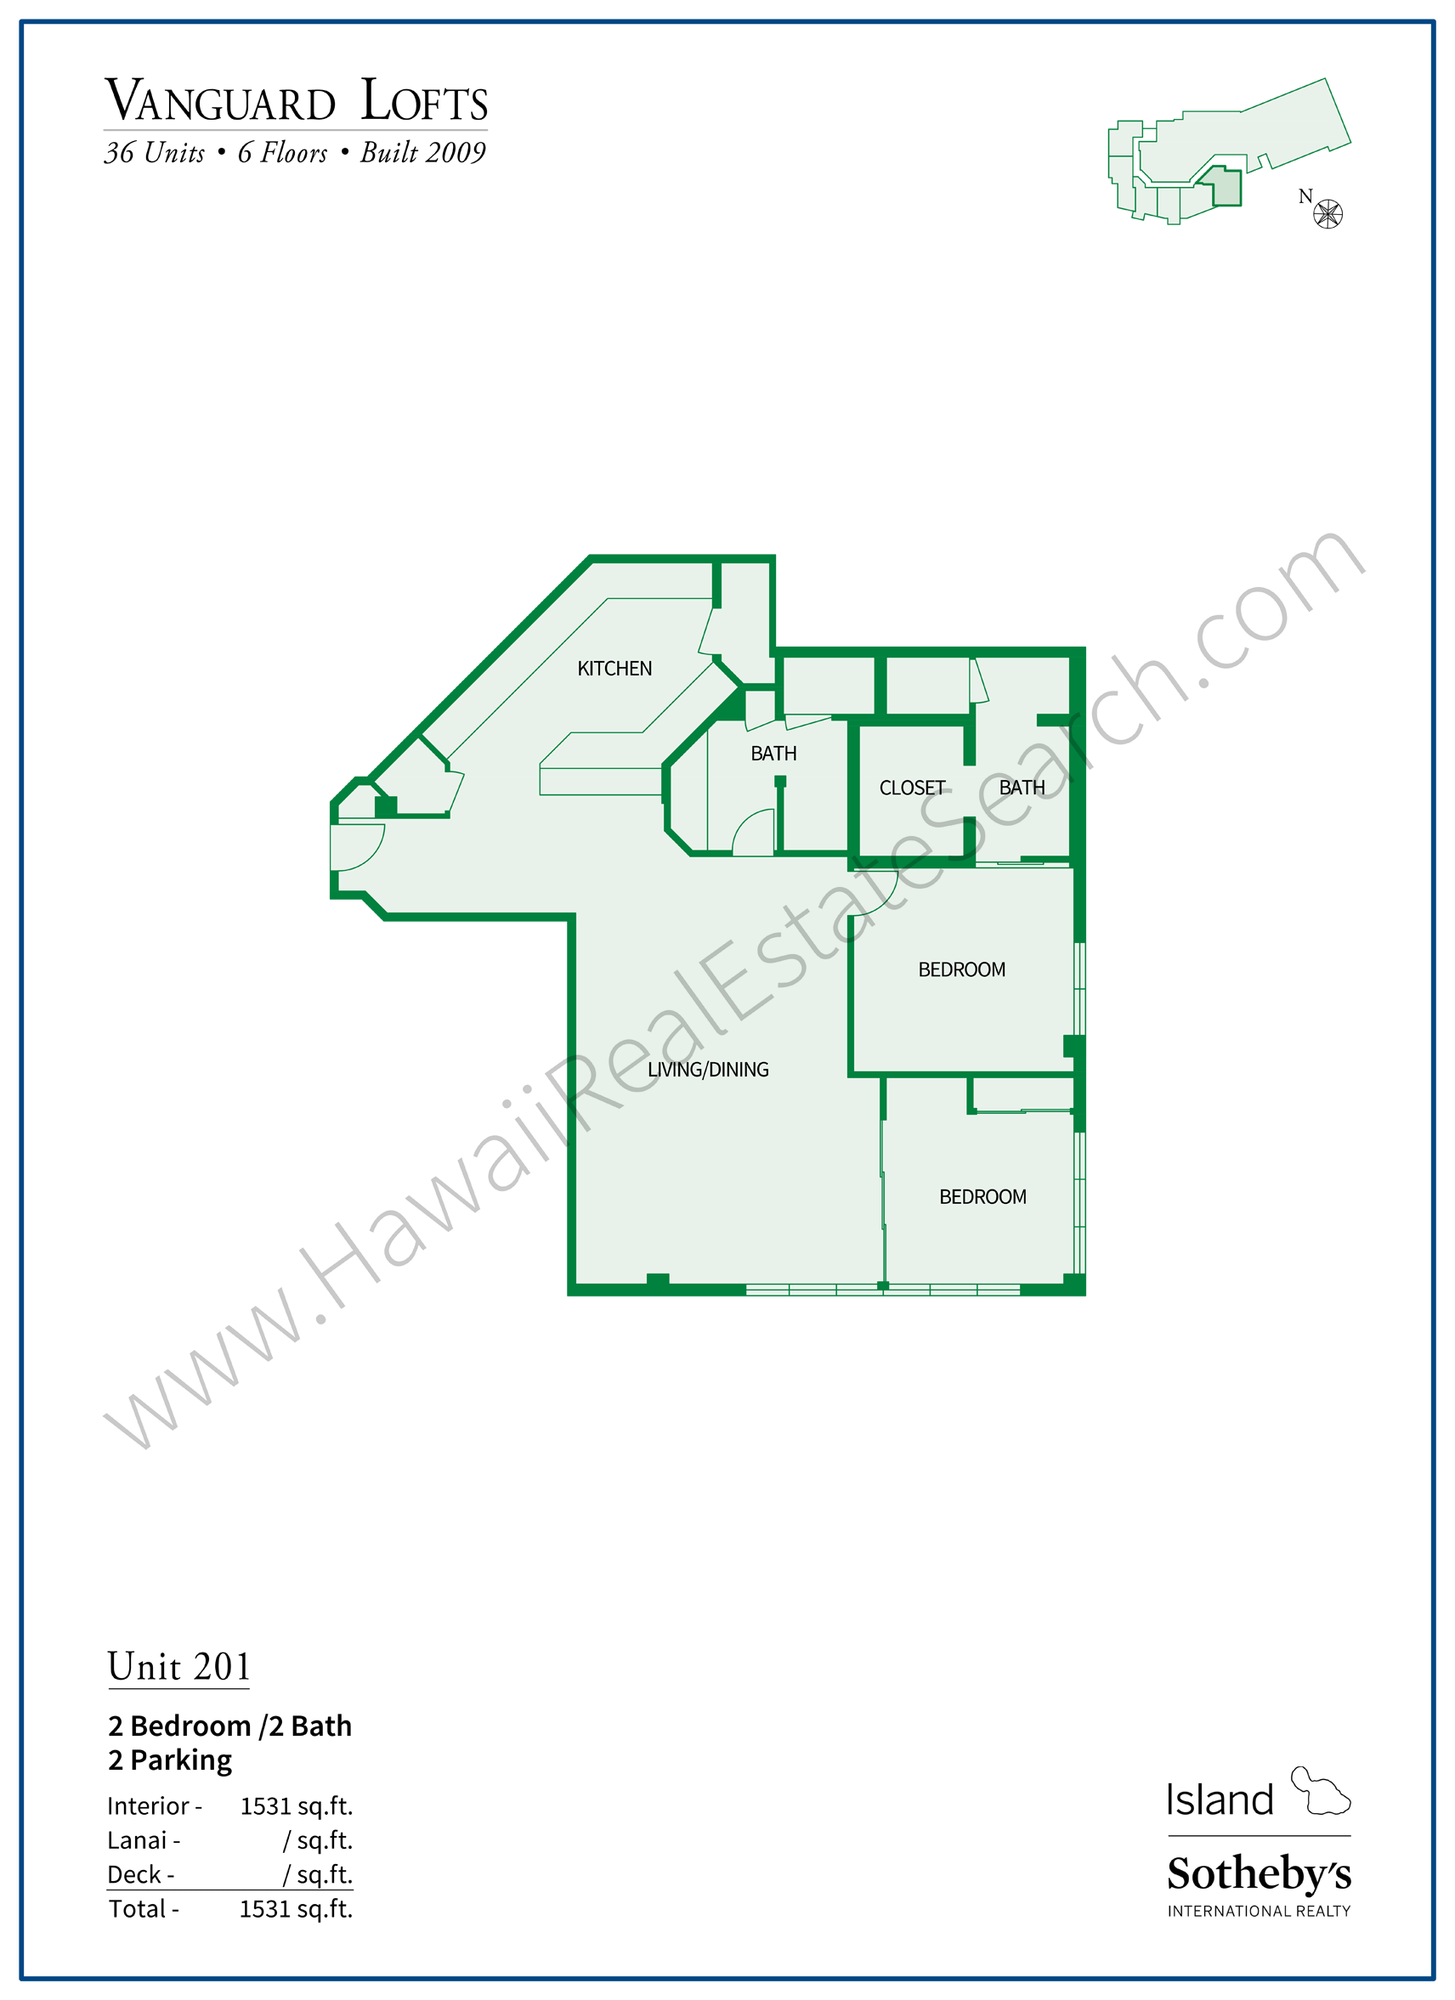 vanguard lofts floor plan unit 201